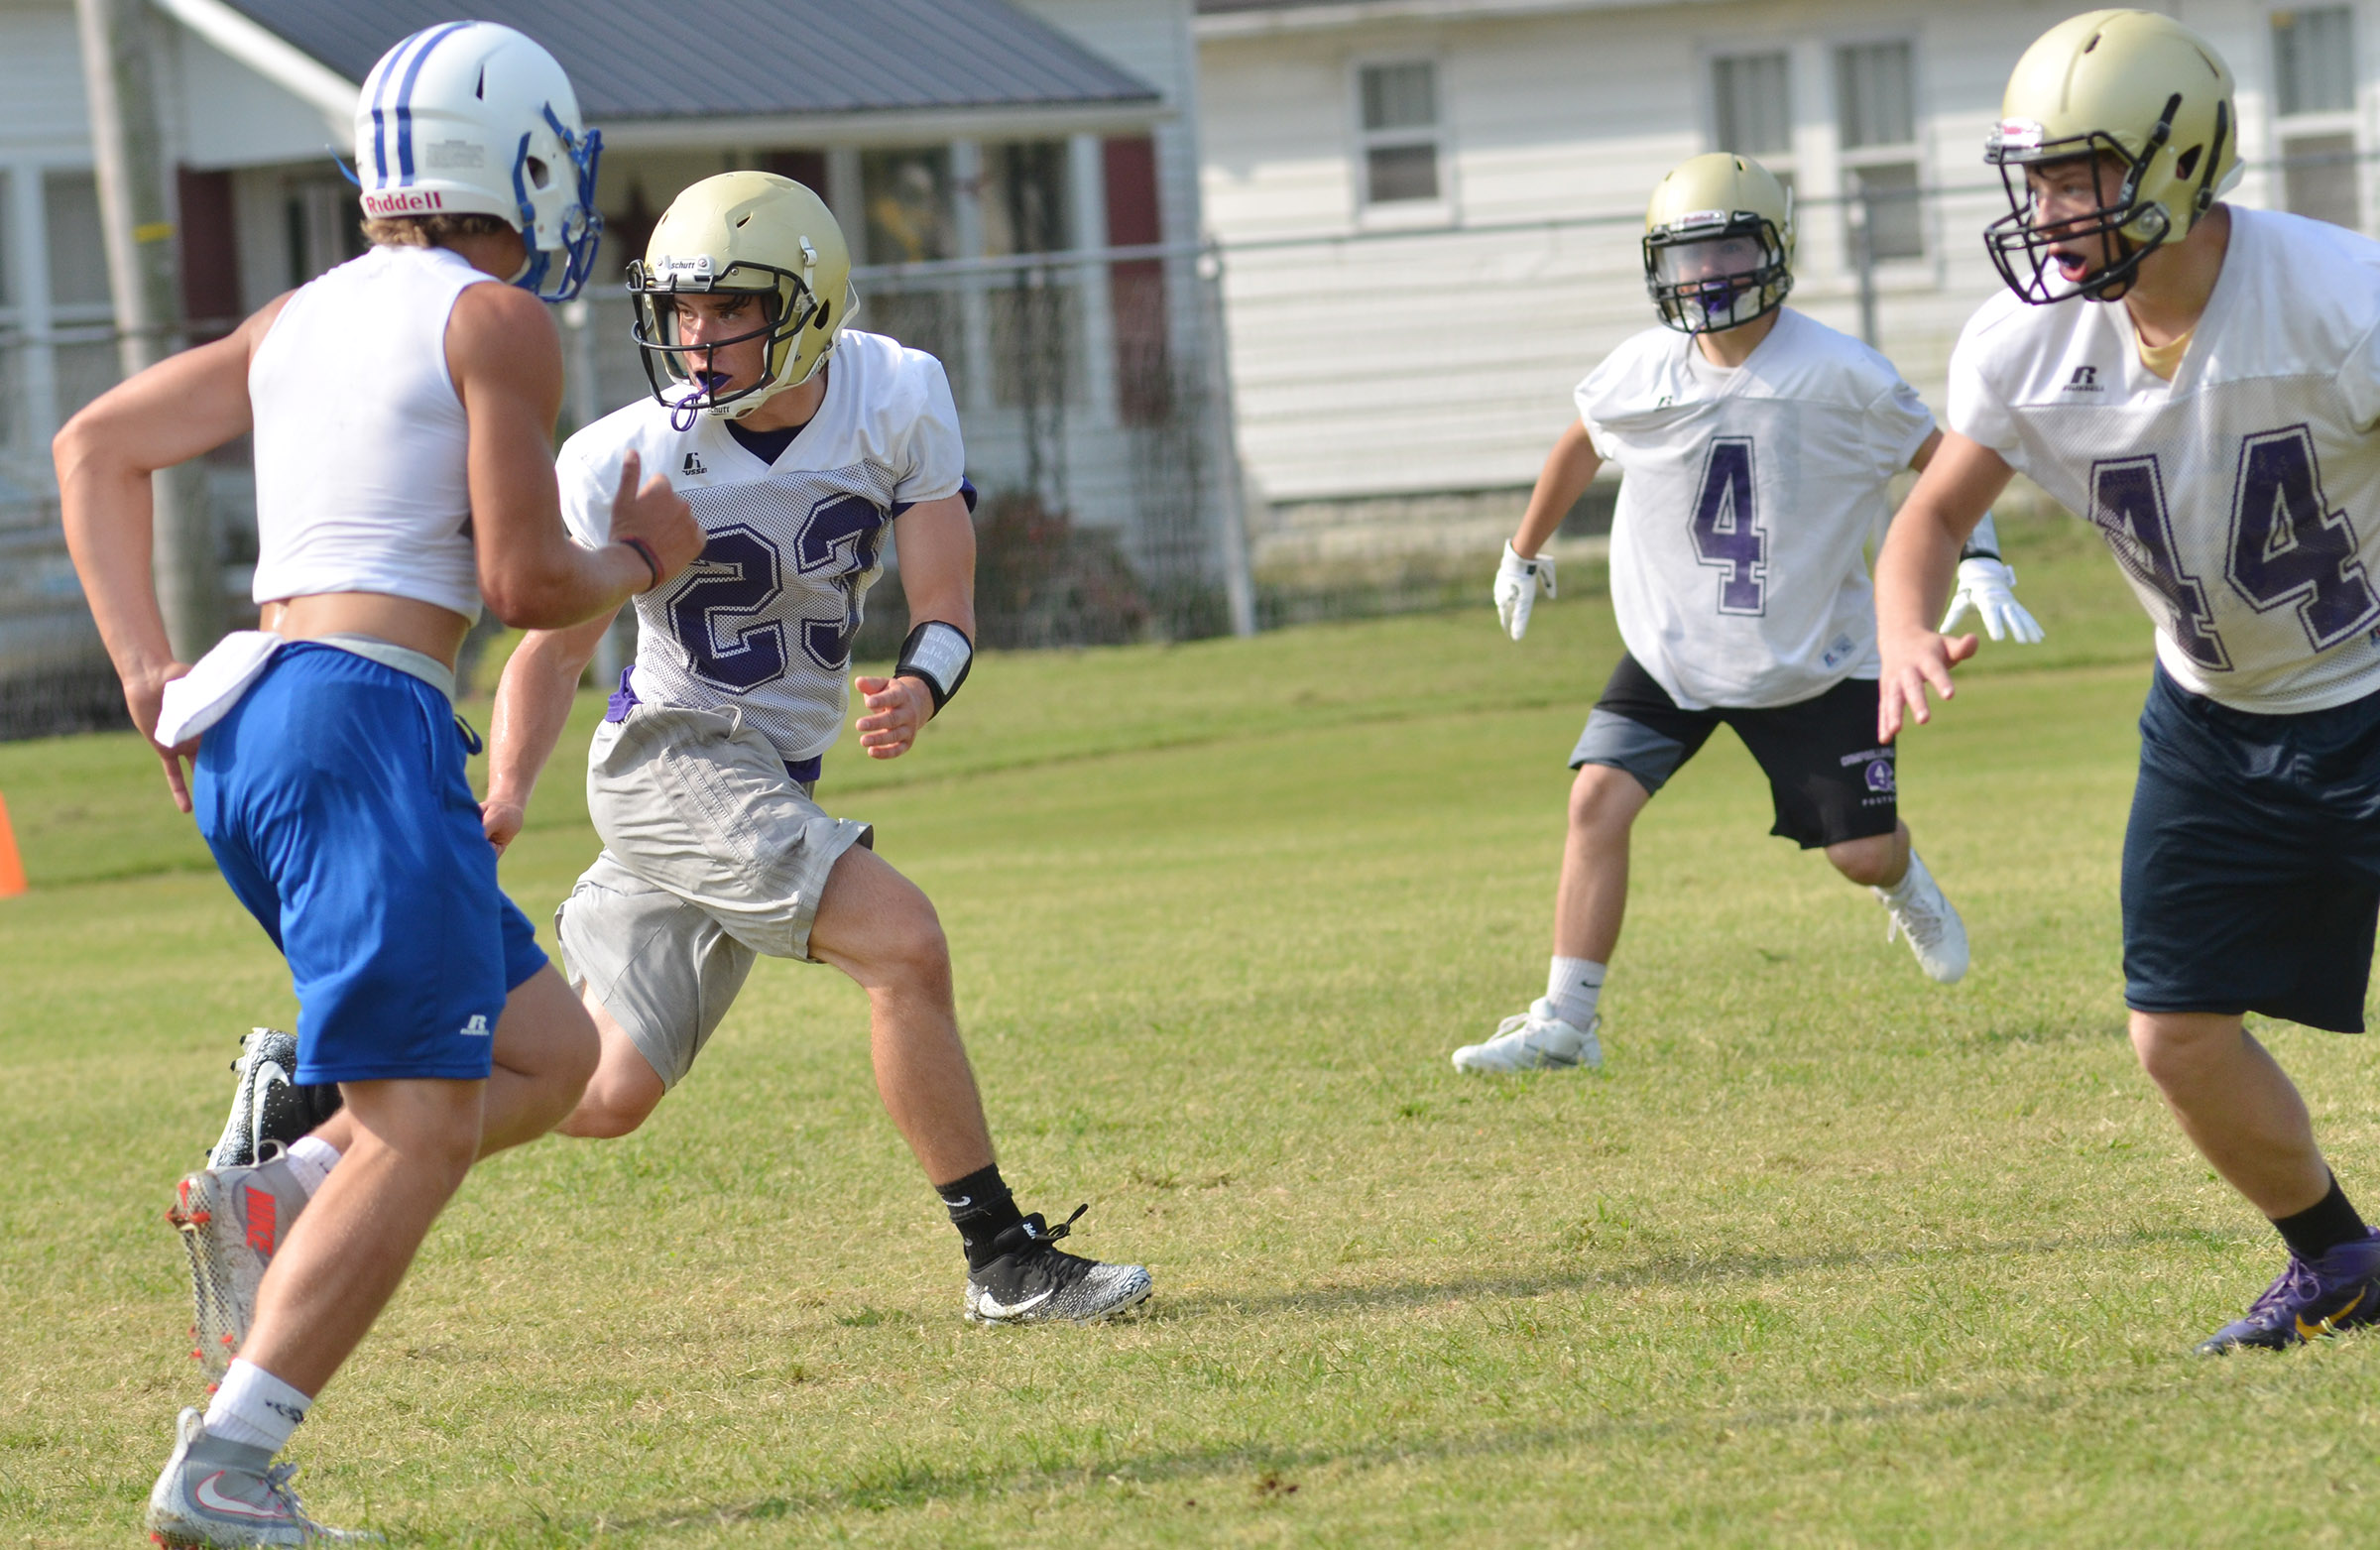 From left, CHS junior Tristan Johnson, senior Austin Carter and sophomore Devon Reardon tackle.